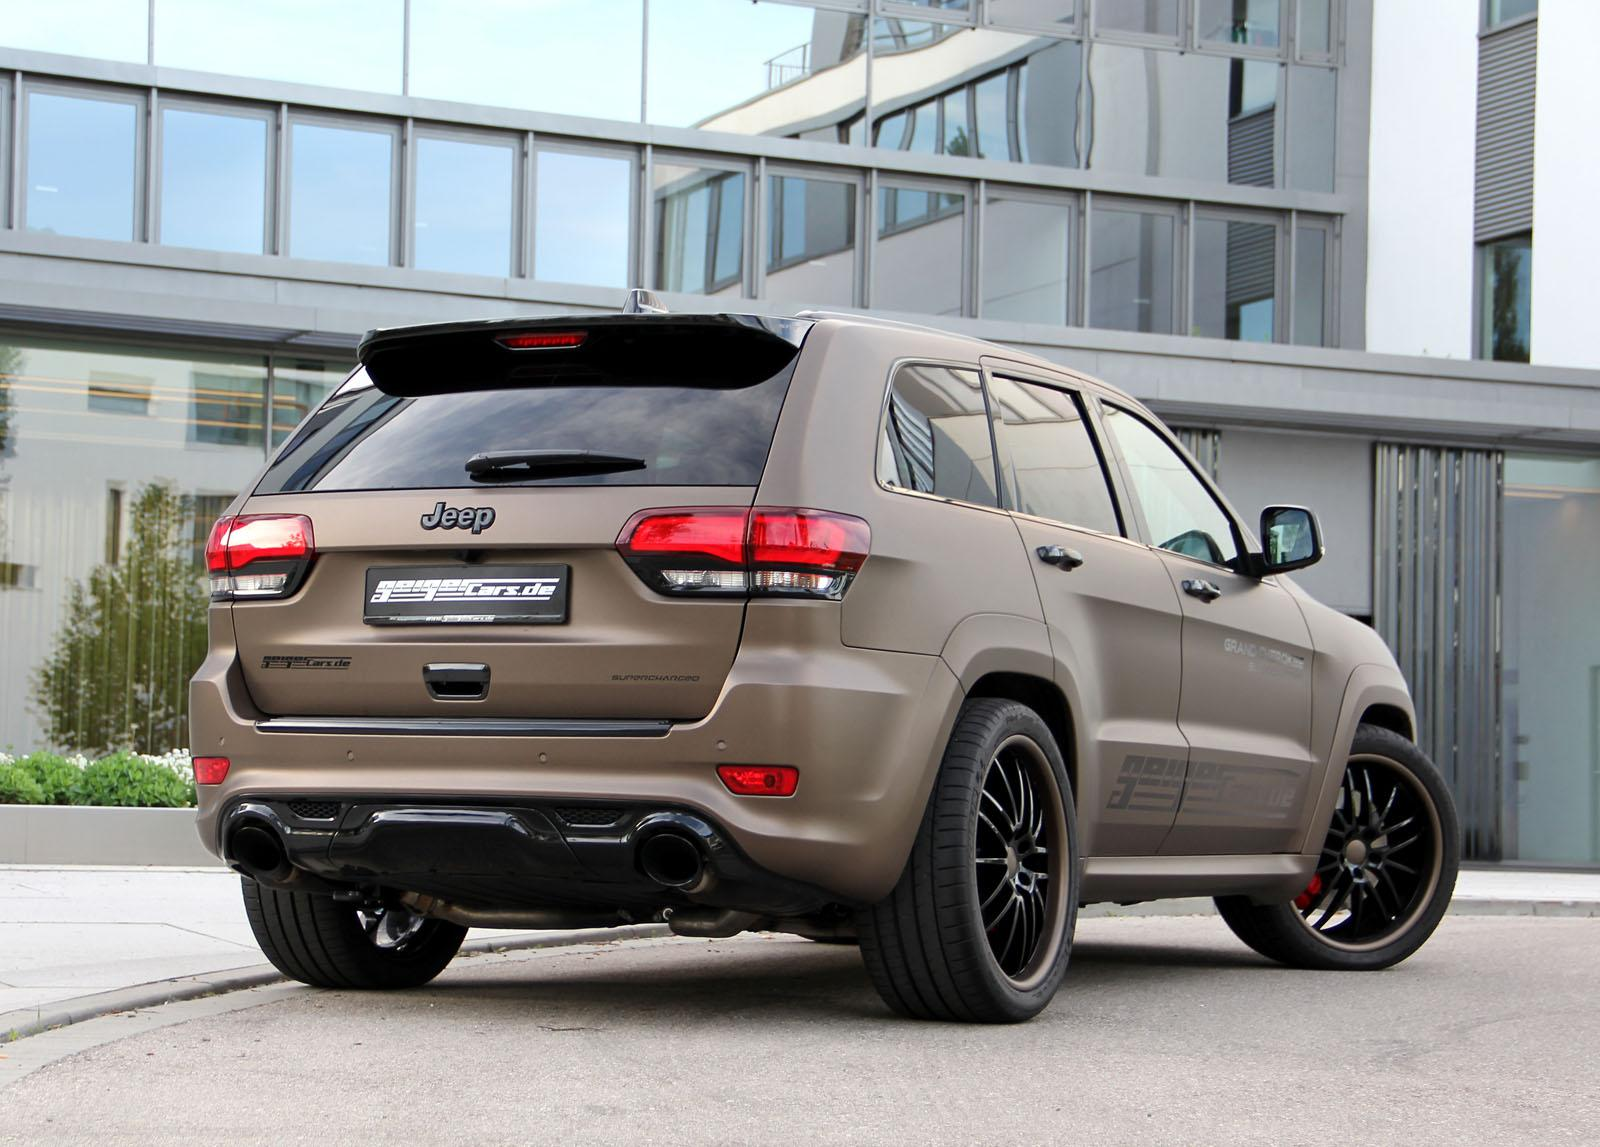 708-сильный Jeep Grand Cherokee SRT от GeigerCars